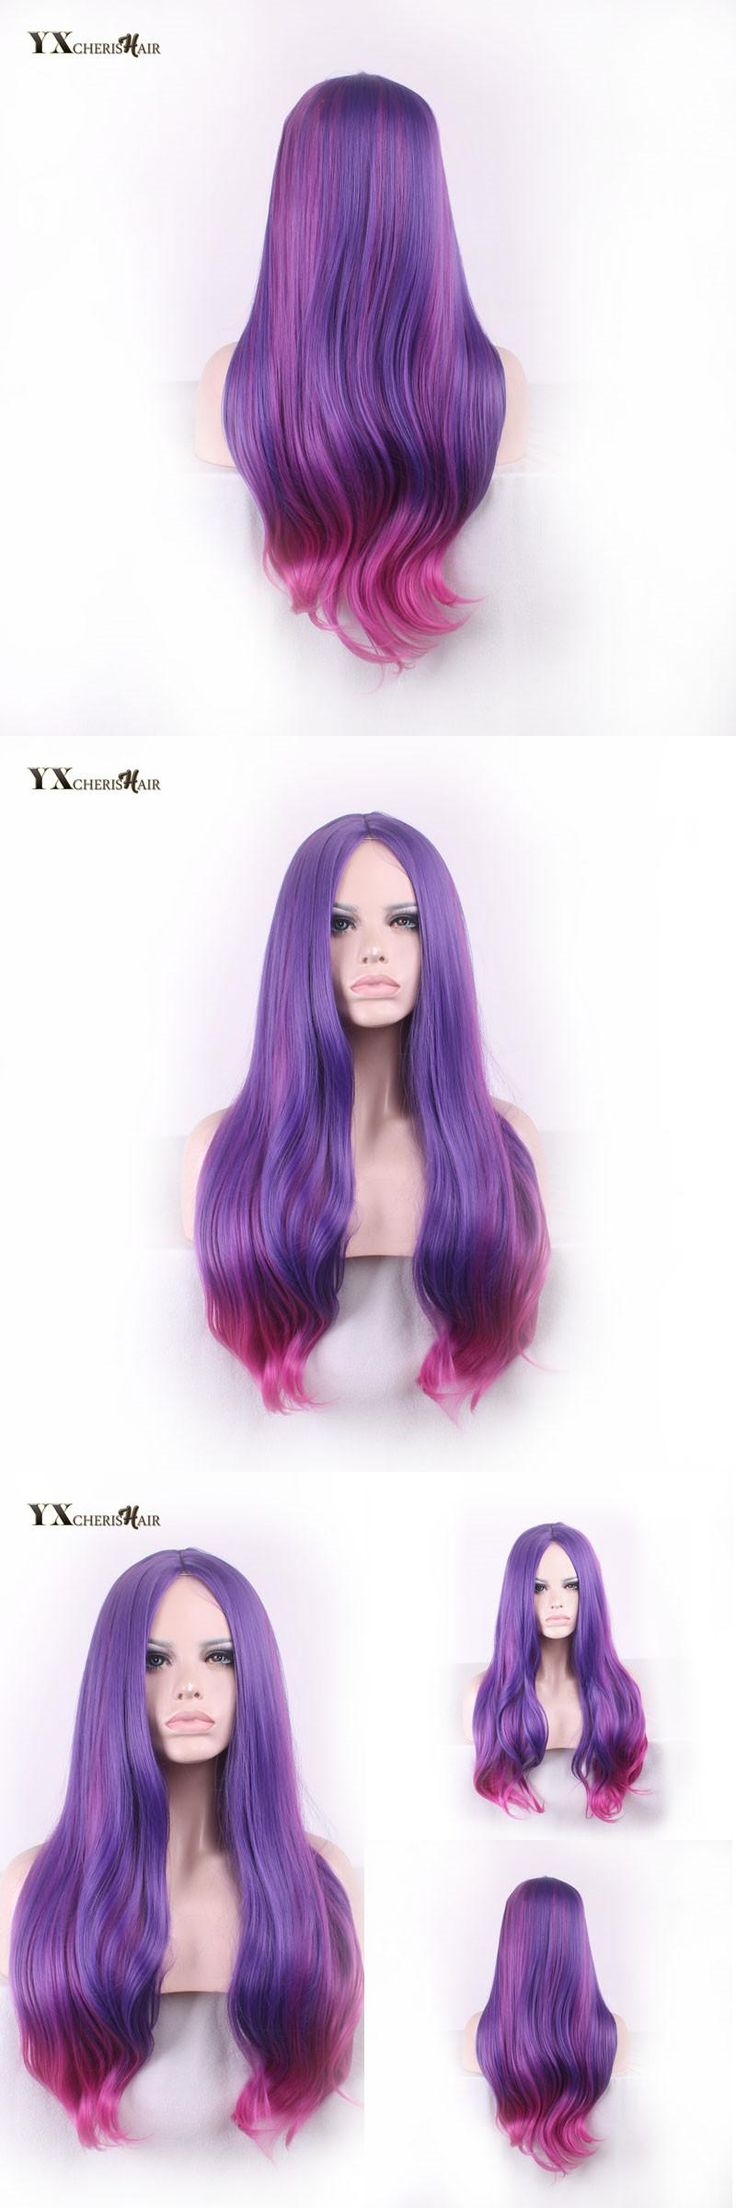 Discount Synthetic Purple Wigs for African American Women Perruque Cosplay Custome Wig Caps with Middle Part YXCHERISHAIR